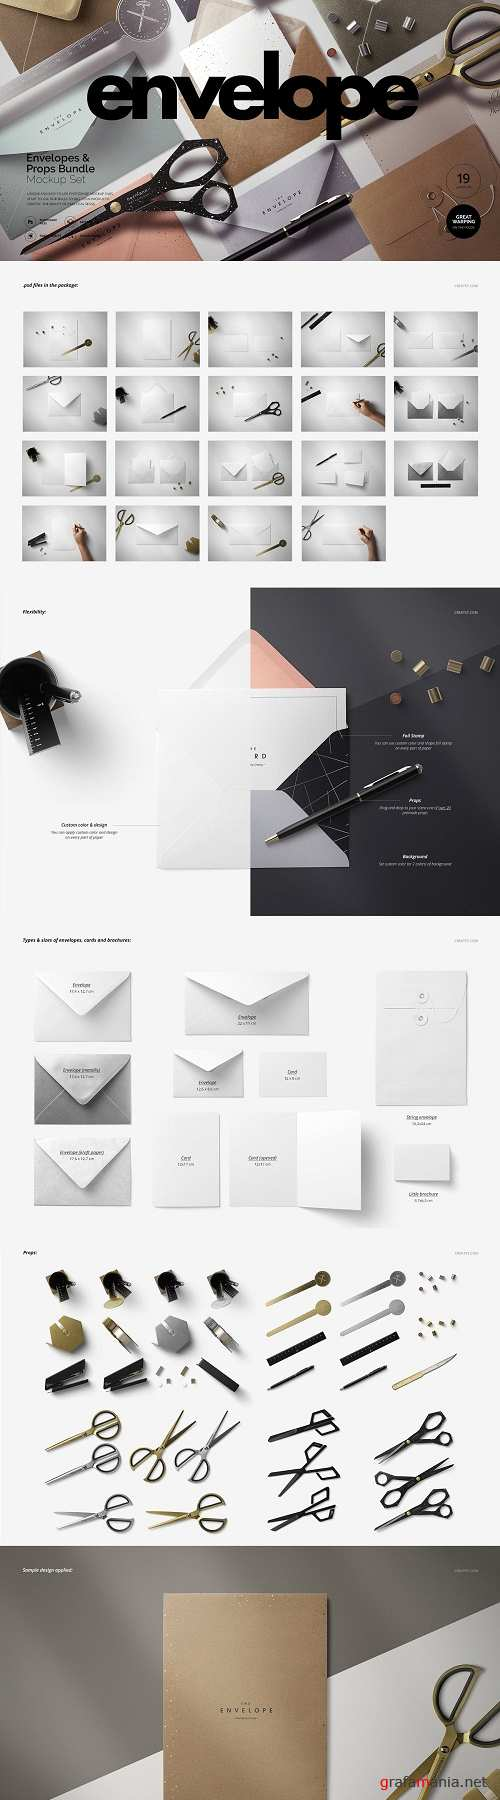 Envelopes Mockup Set (+props) - 3418302